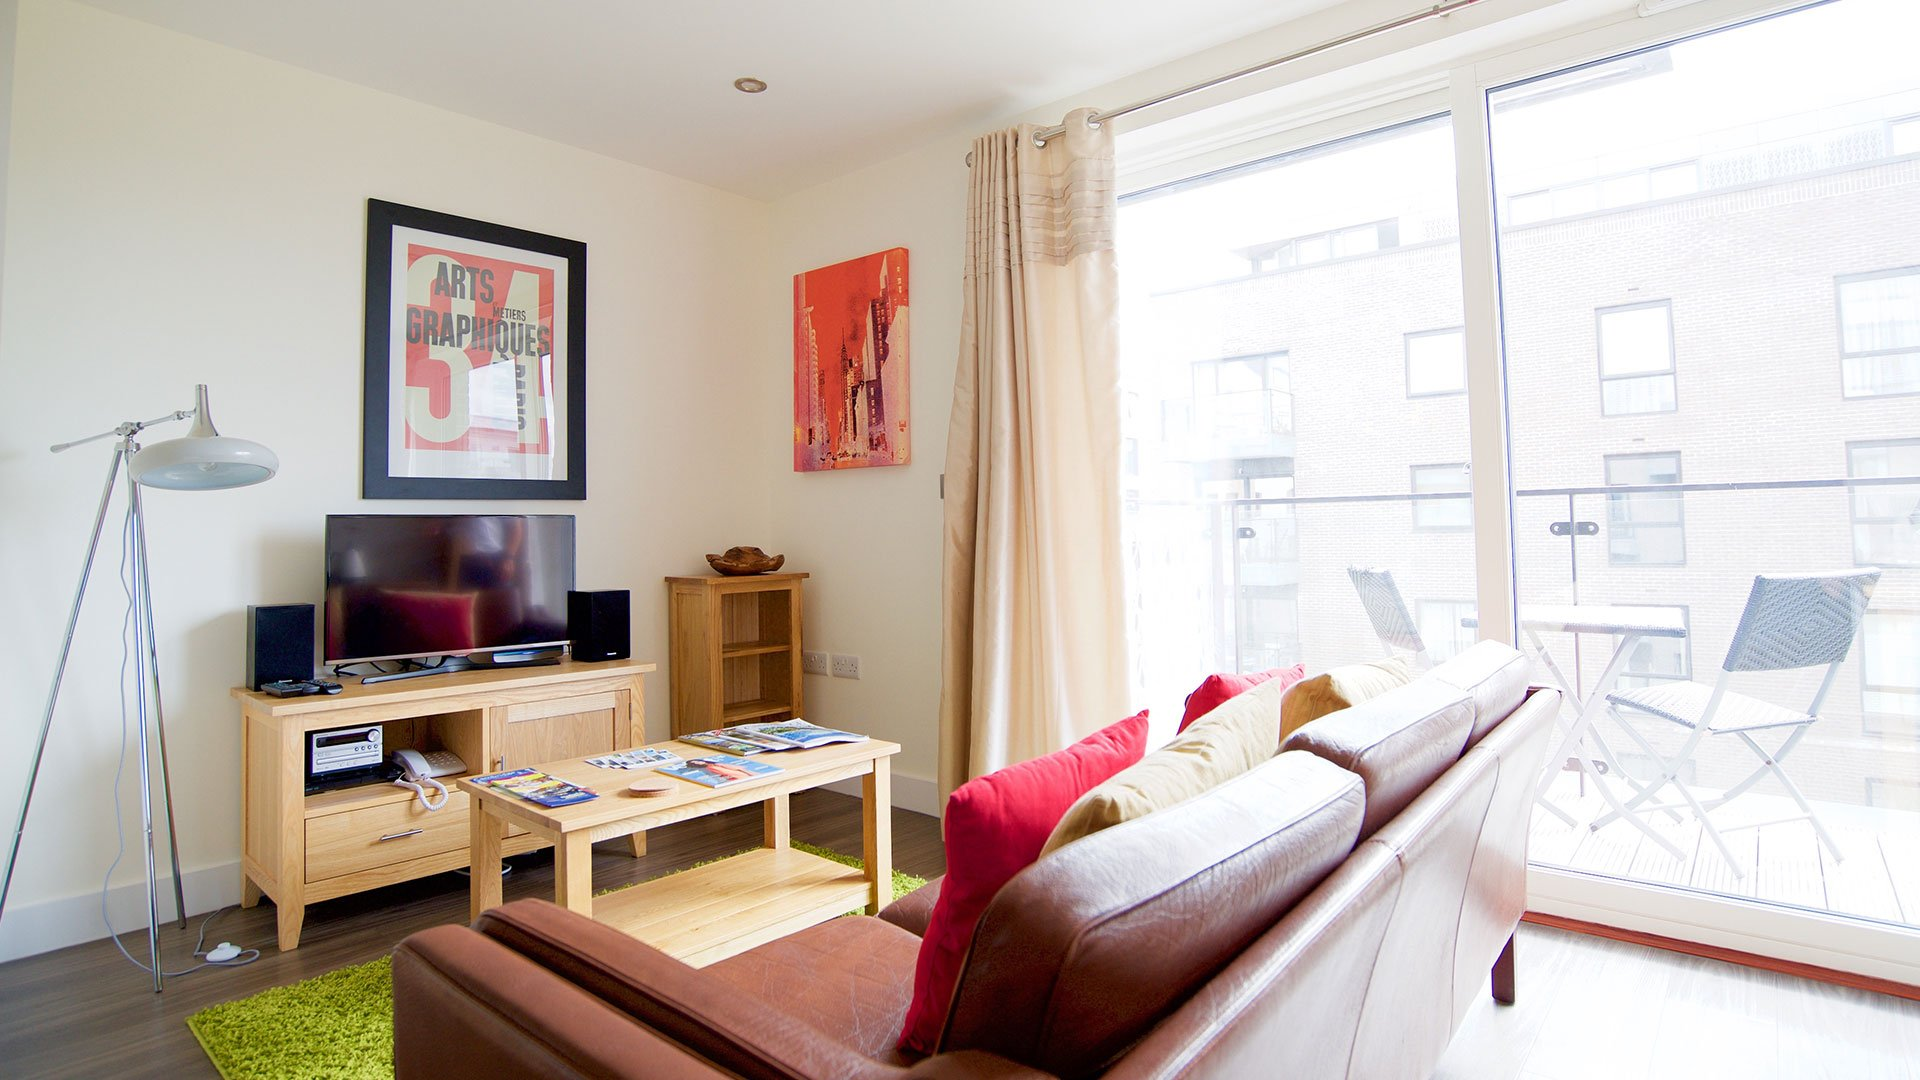 Ceres - a luxury studio apartment in central Cambridge.